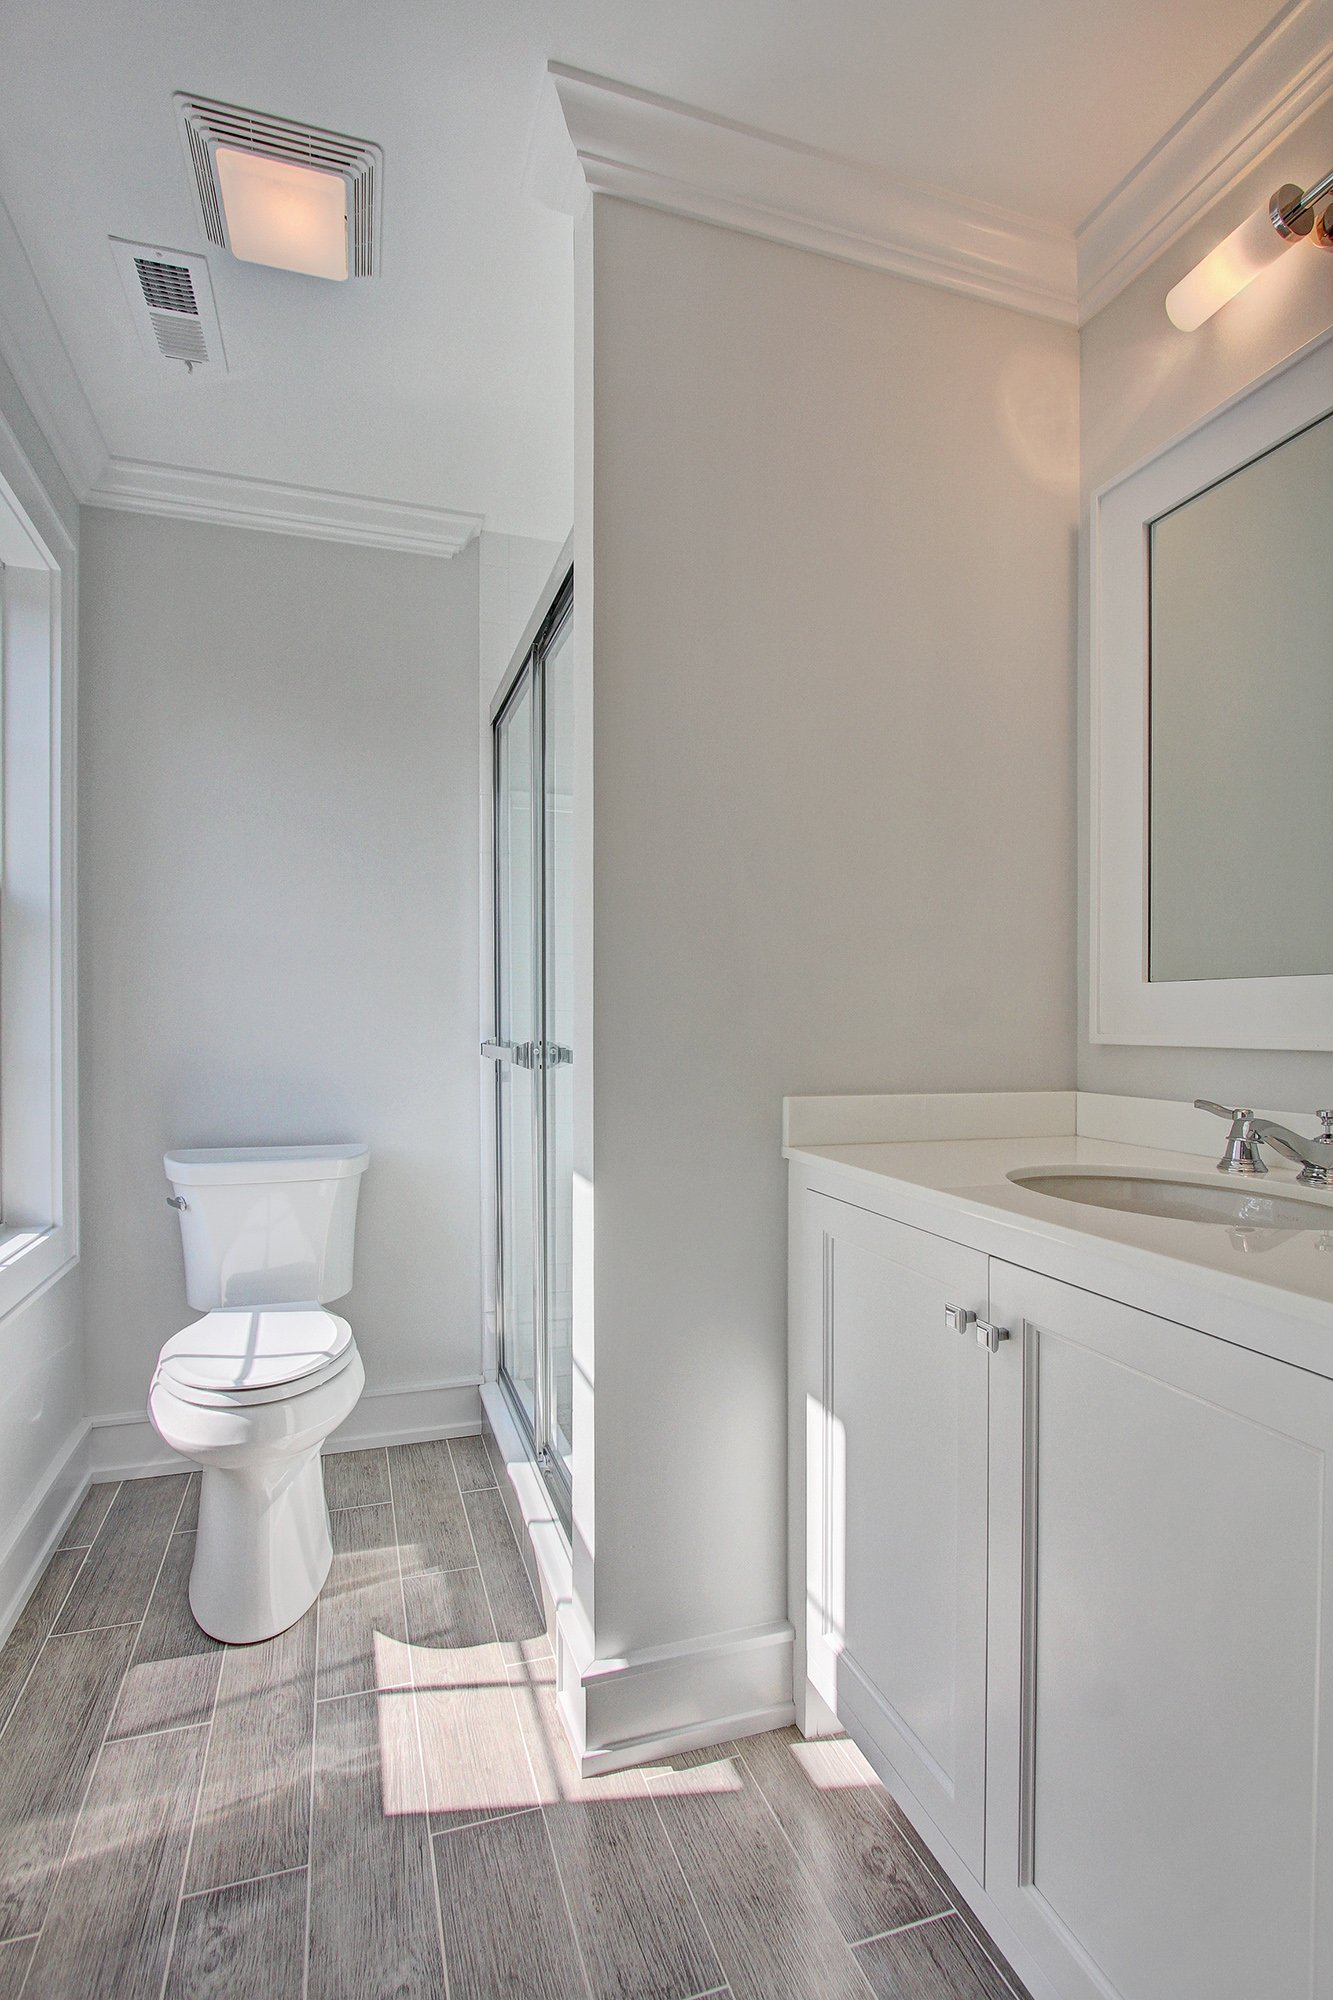 Green Healthy Home Bathroom Interior, Fairfield CT